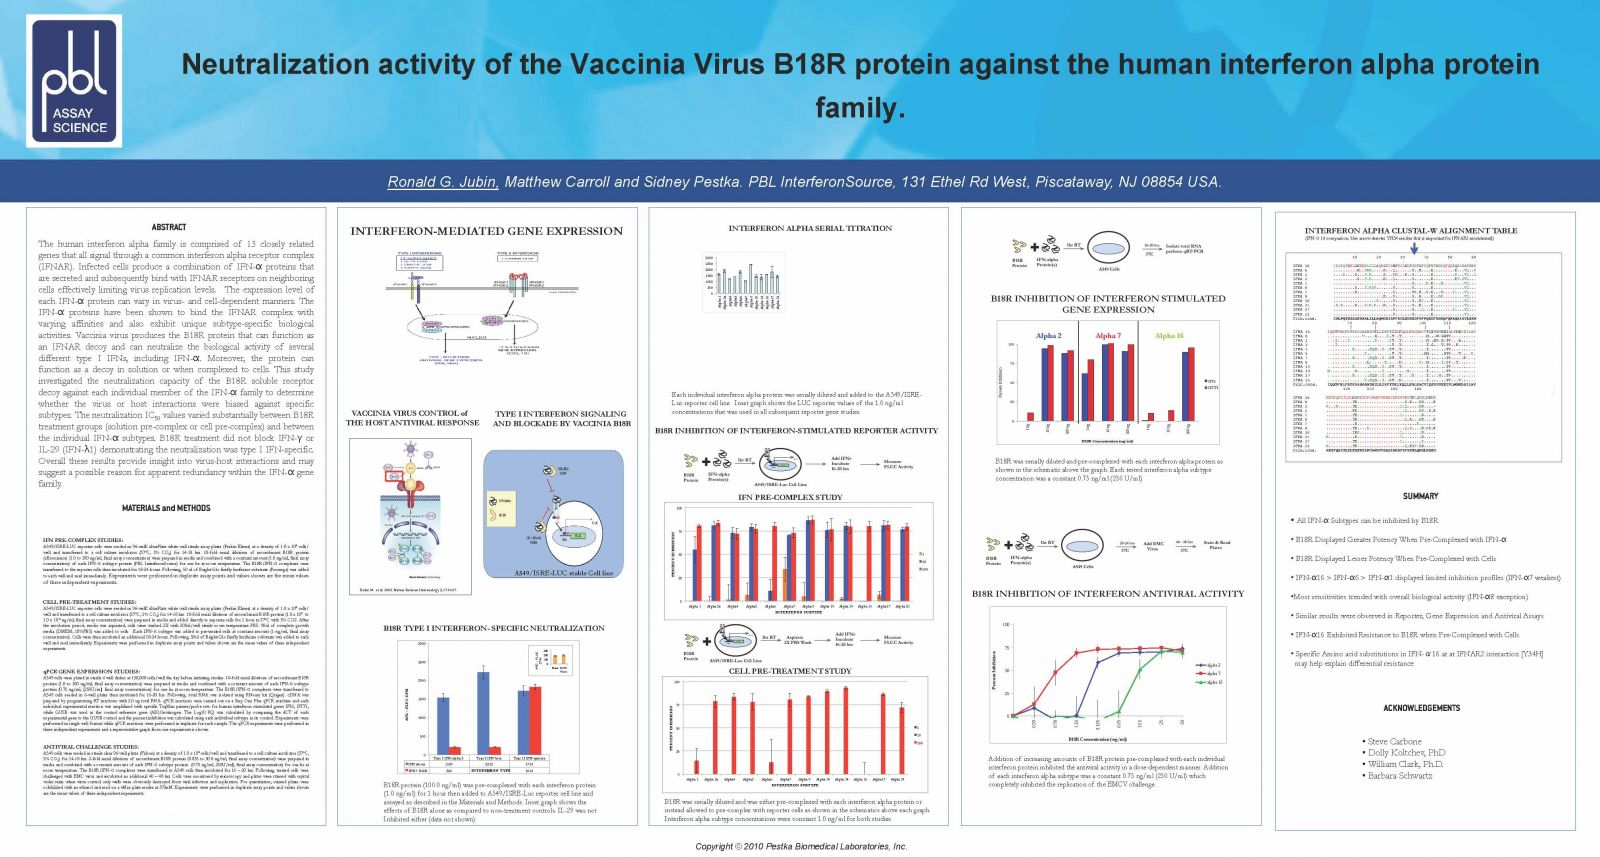 Neutralization Activity of the Vaccinia Virus B18R protein against the Human Interferon Alpha protein family